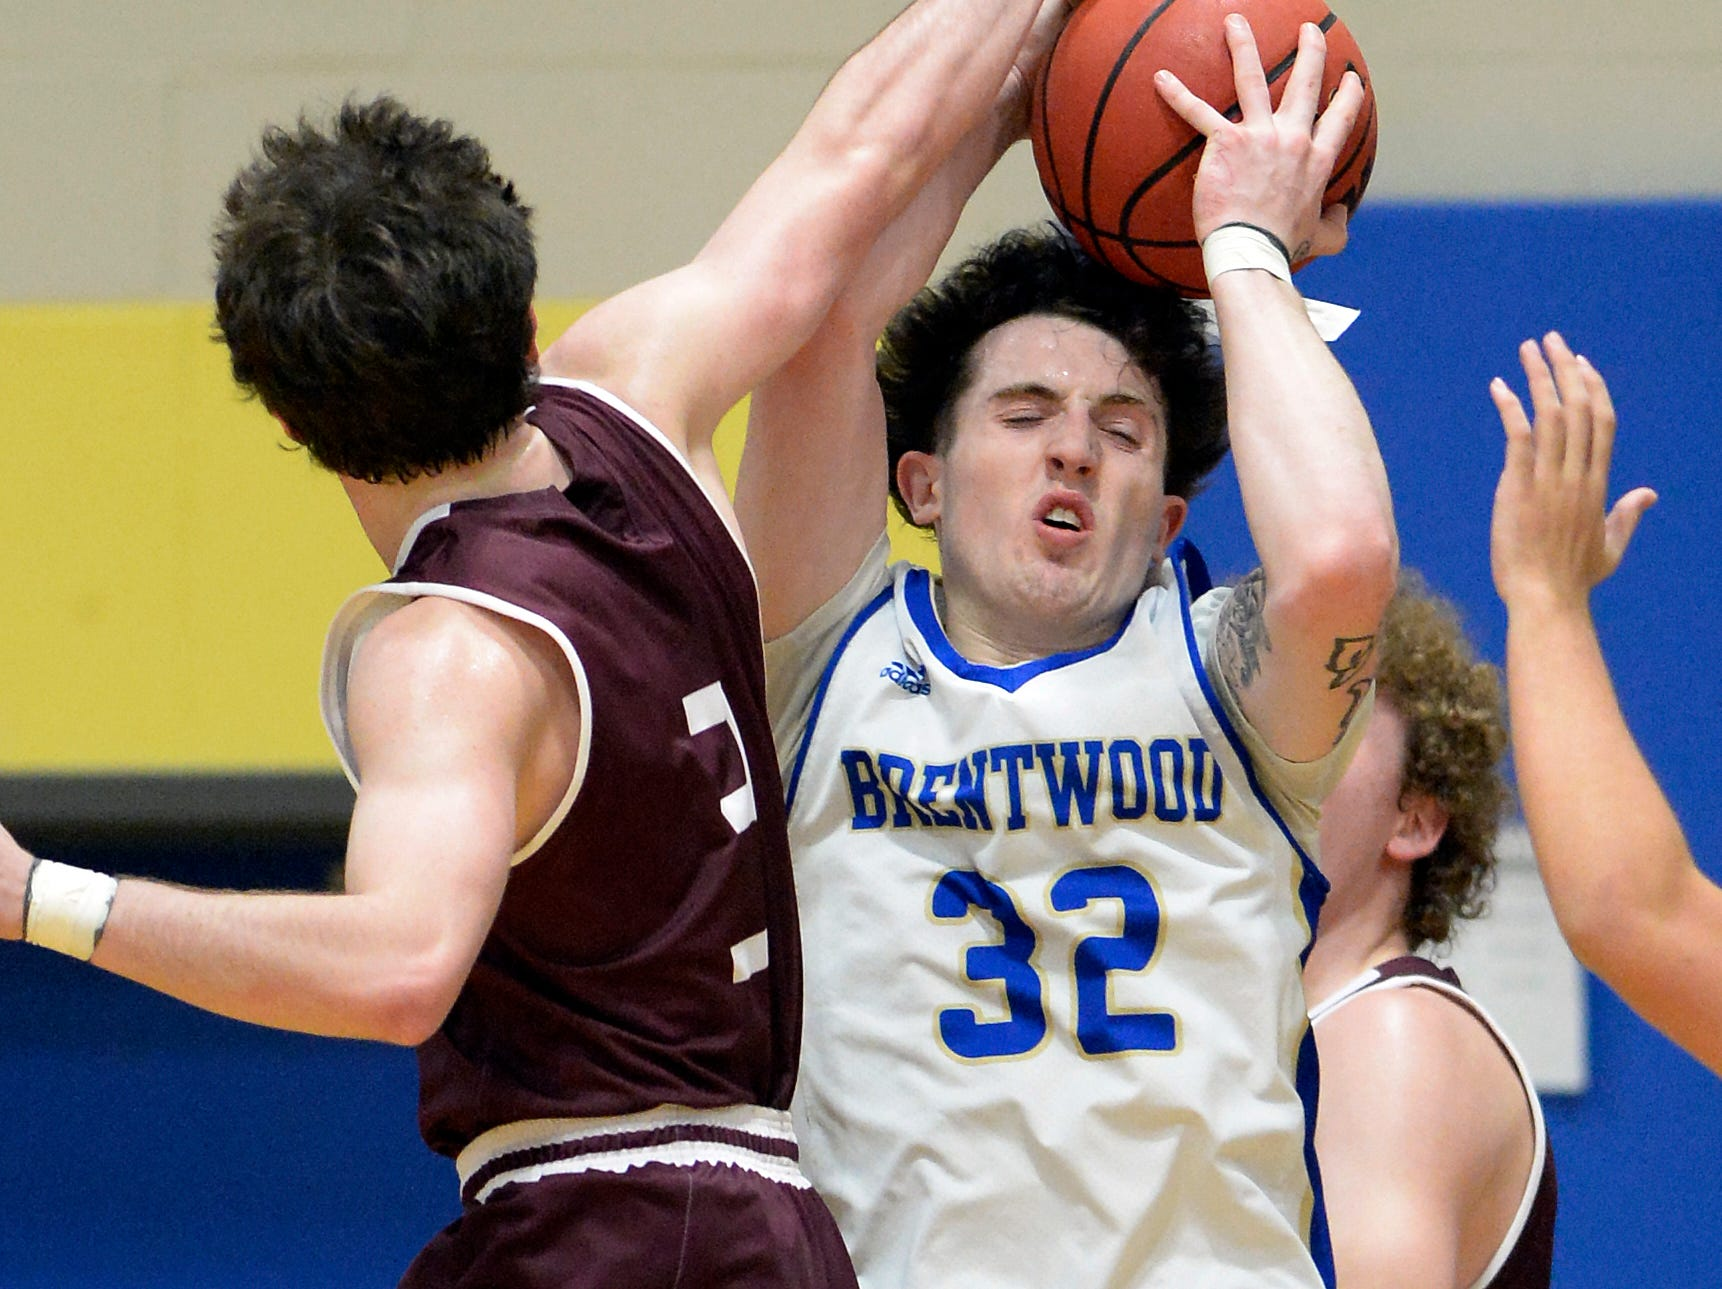 Brentwood guard Jack Thurman (32) pulls down a rebound as he is defended by Franklin guard Reese Glover (3) during the first half of an High School basketball game Tuesday, Jan. 15, 2019, in Brentwood, Tenn.